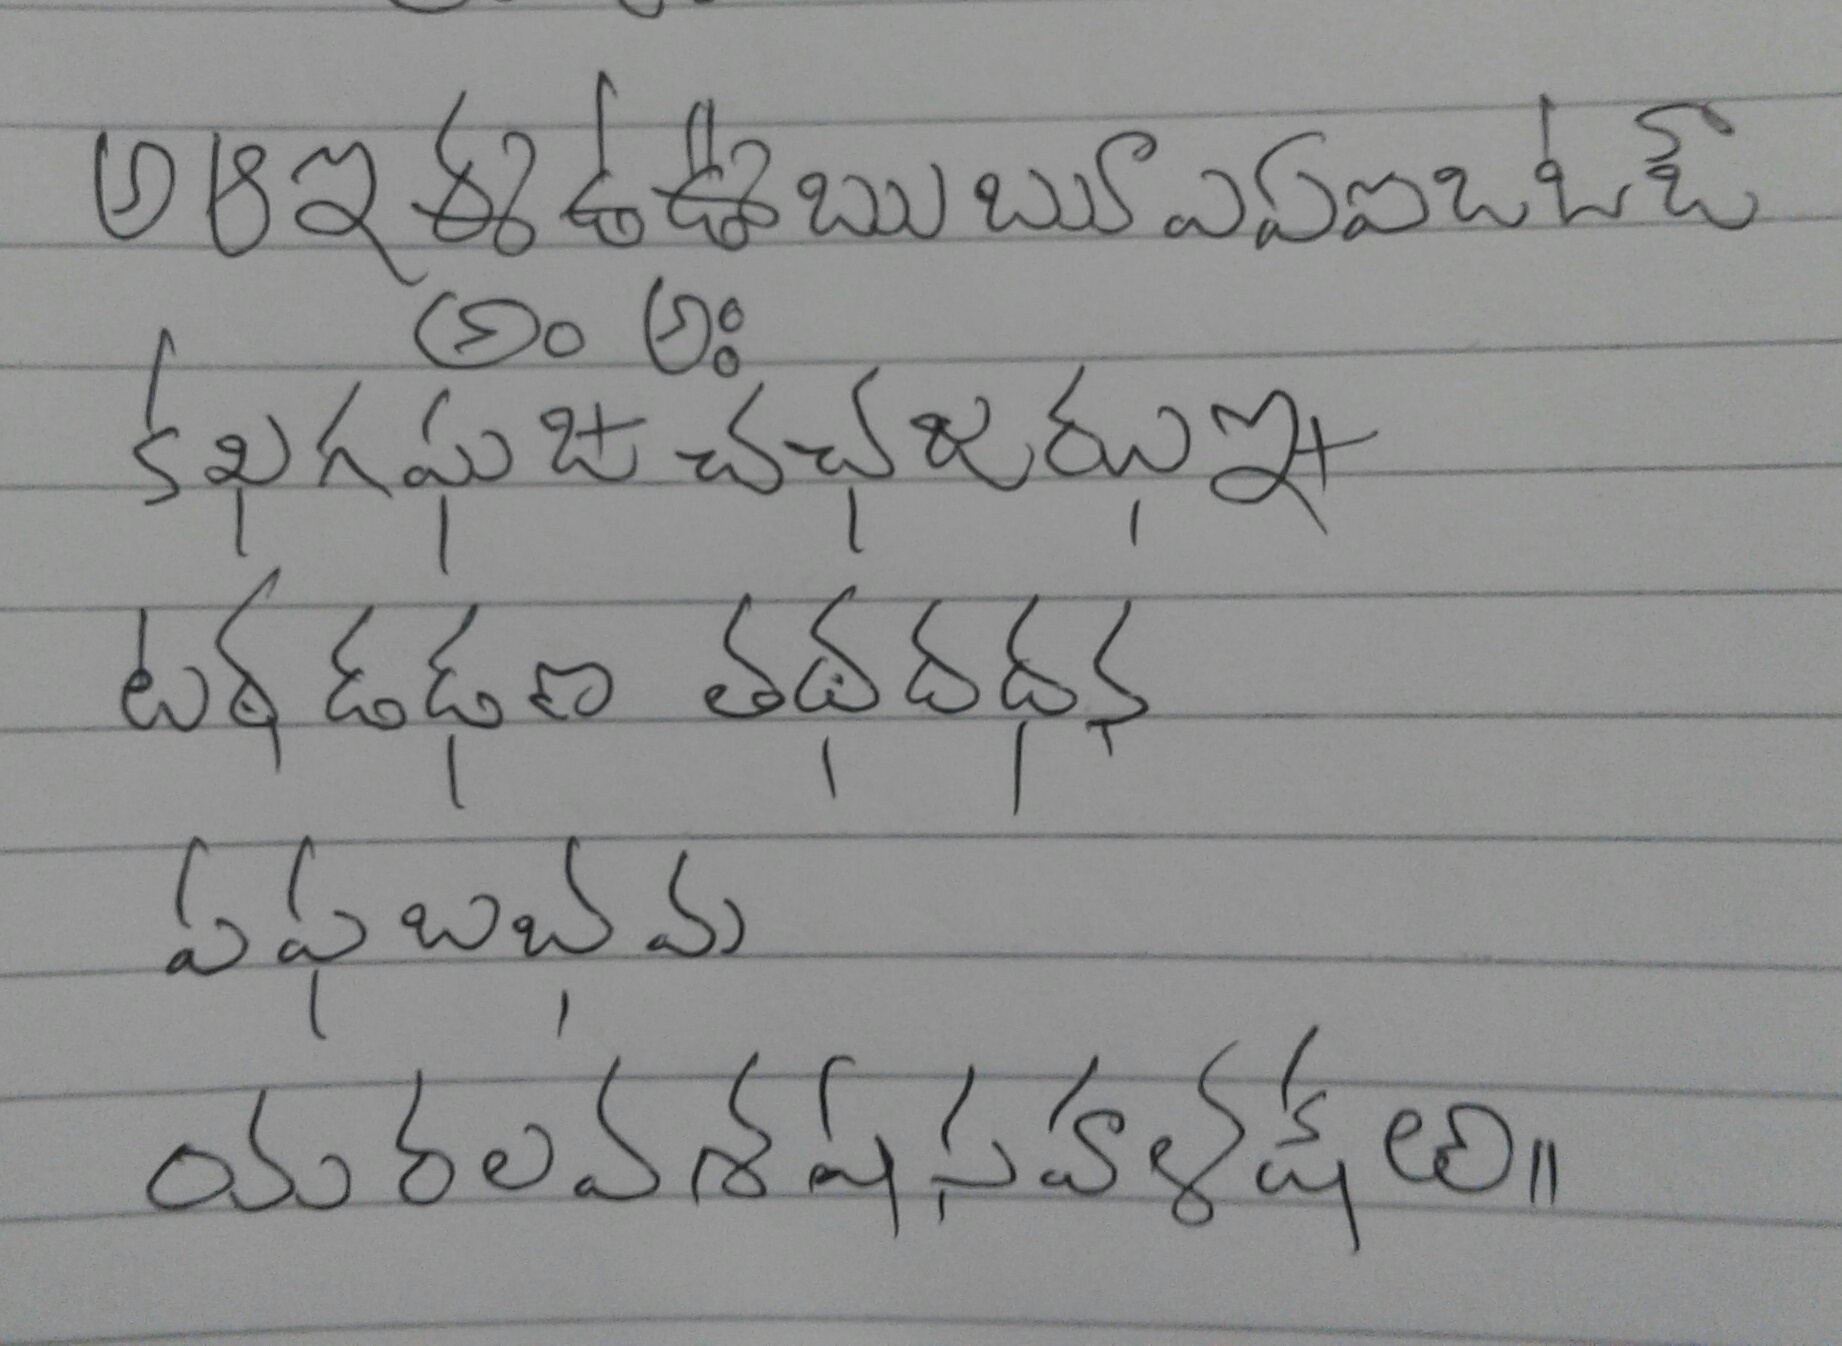 for many yearsas an employeei have been using english cursive style in drafting letters and required correspondence which affected my telugu writing